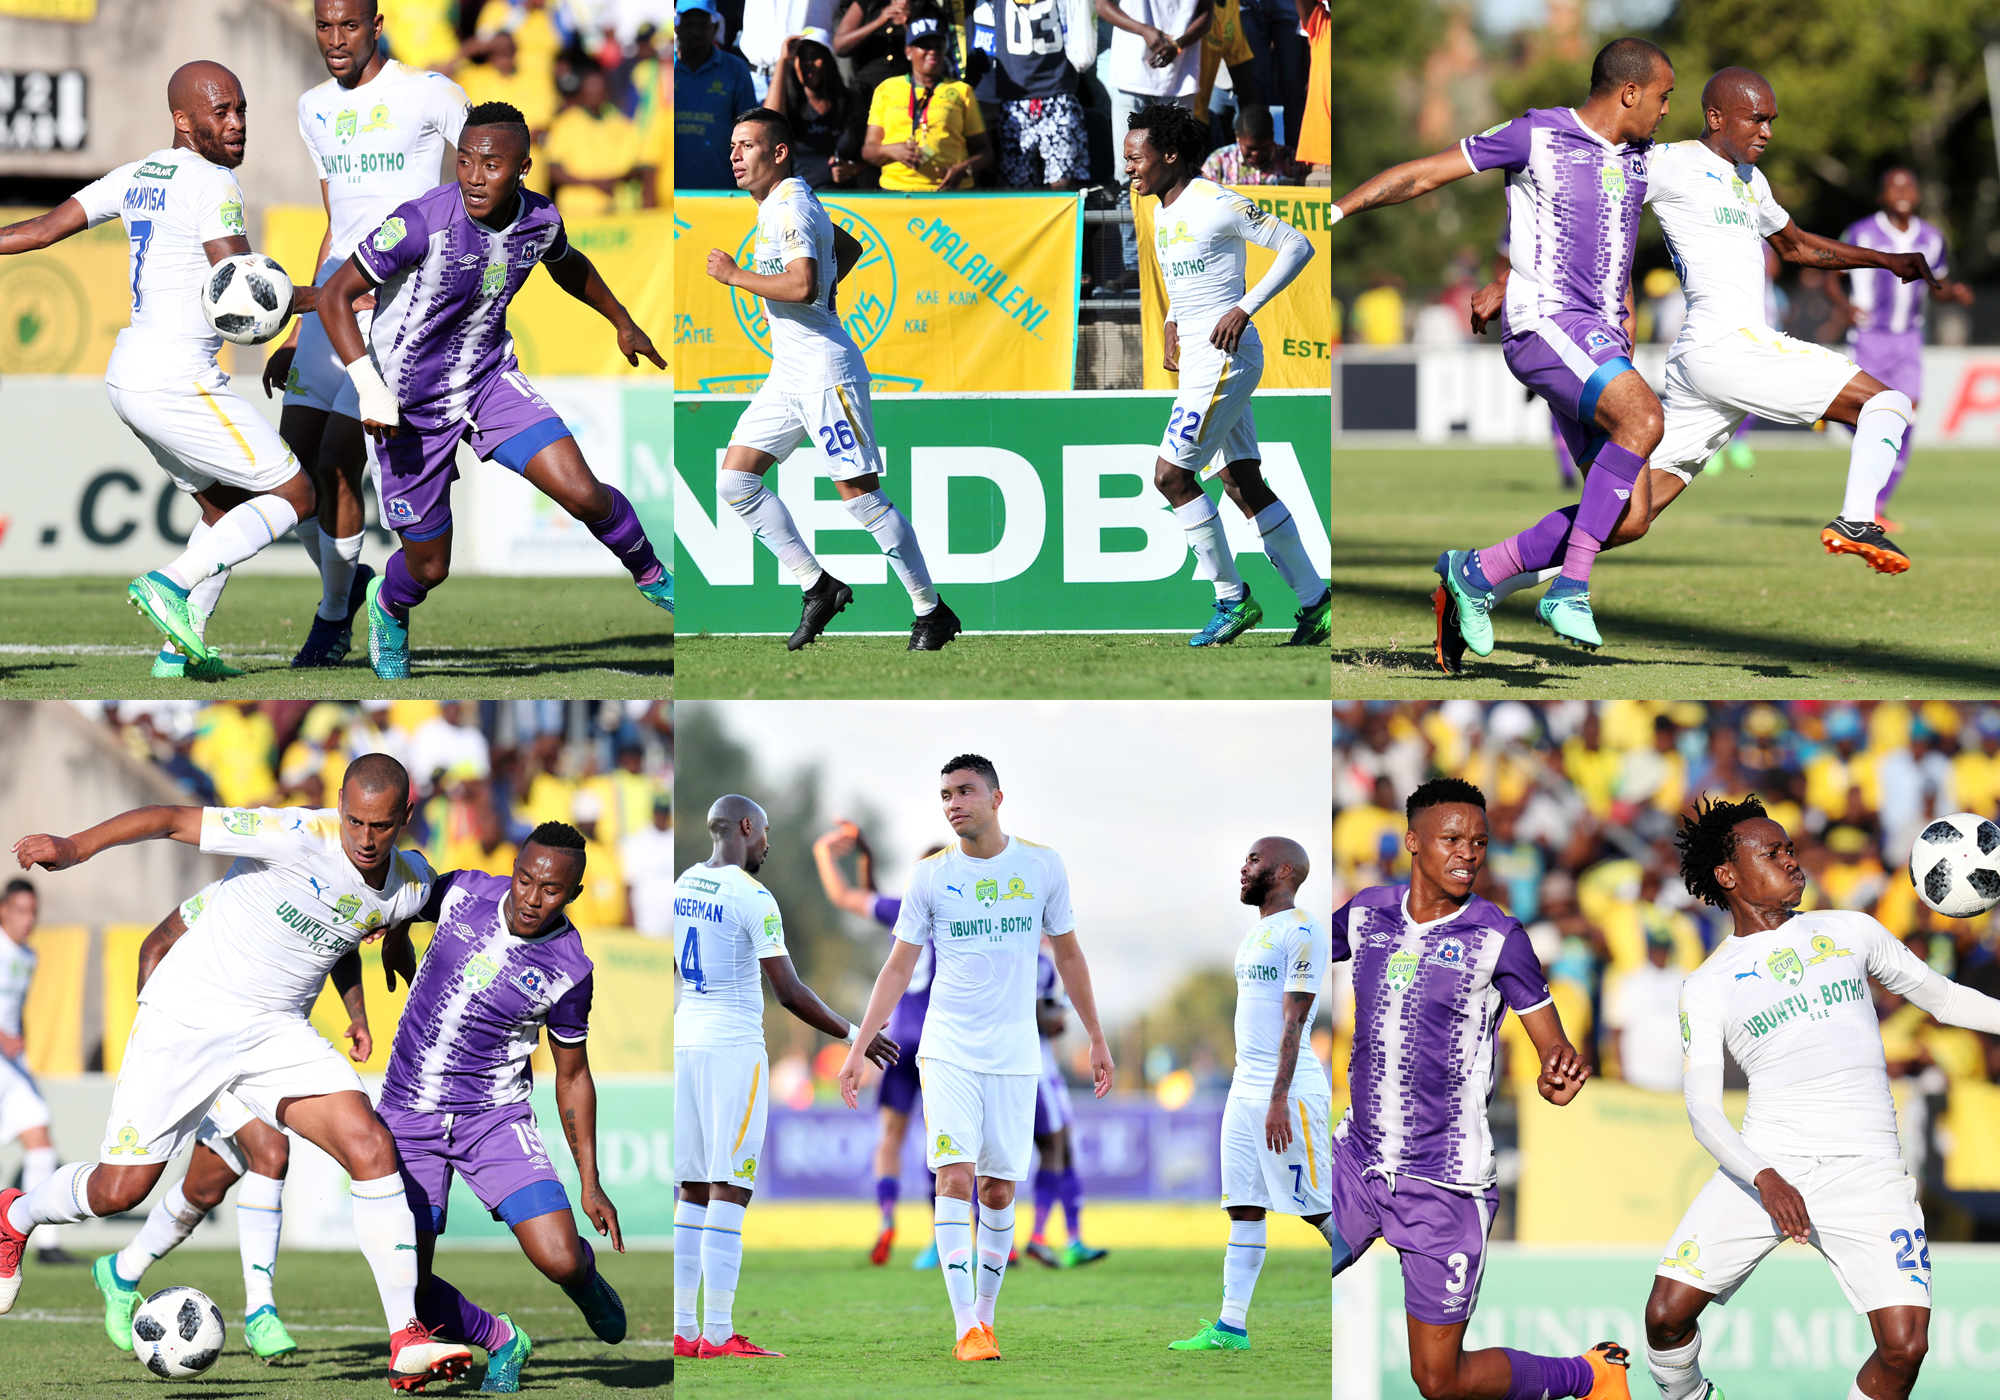 gallery downs crash out nedbank cup mamelodi sundowns website